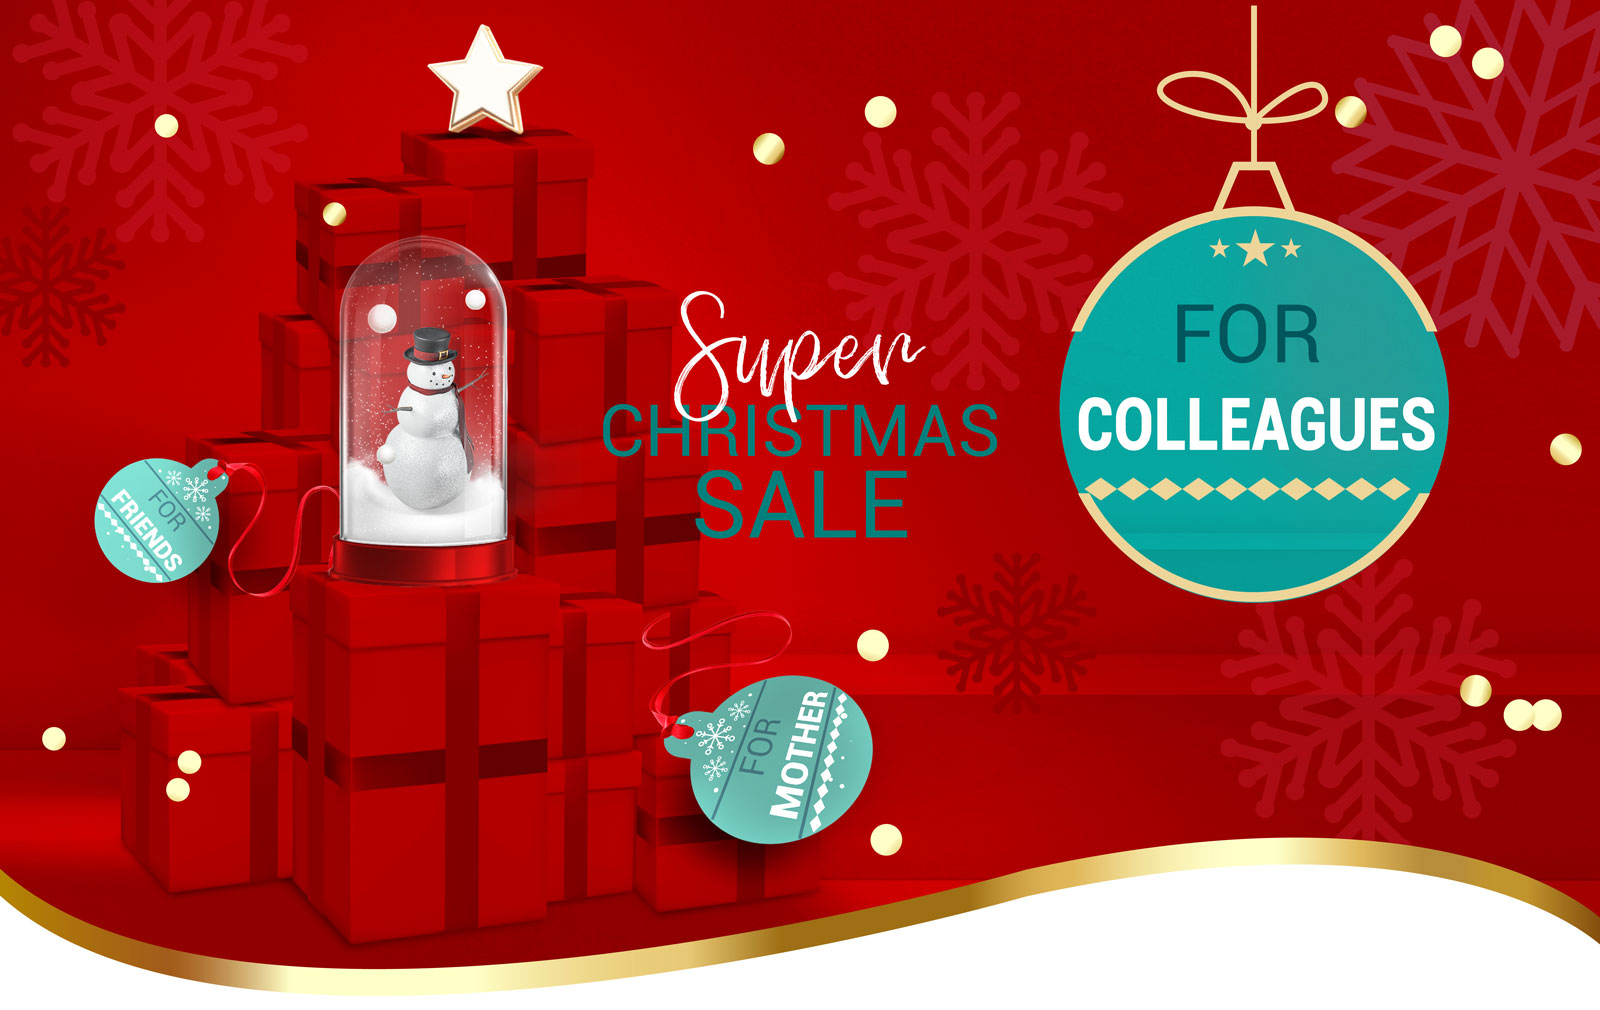 super christmas sale gift guide for colleagues